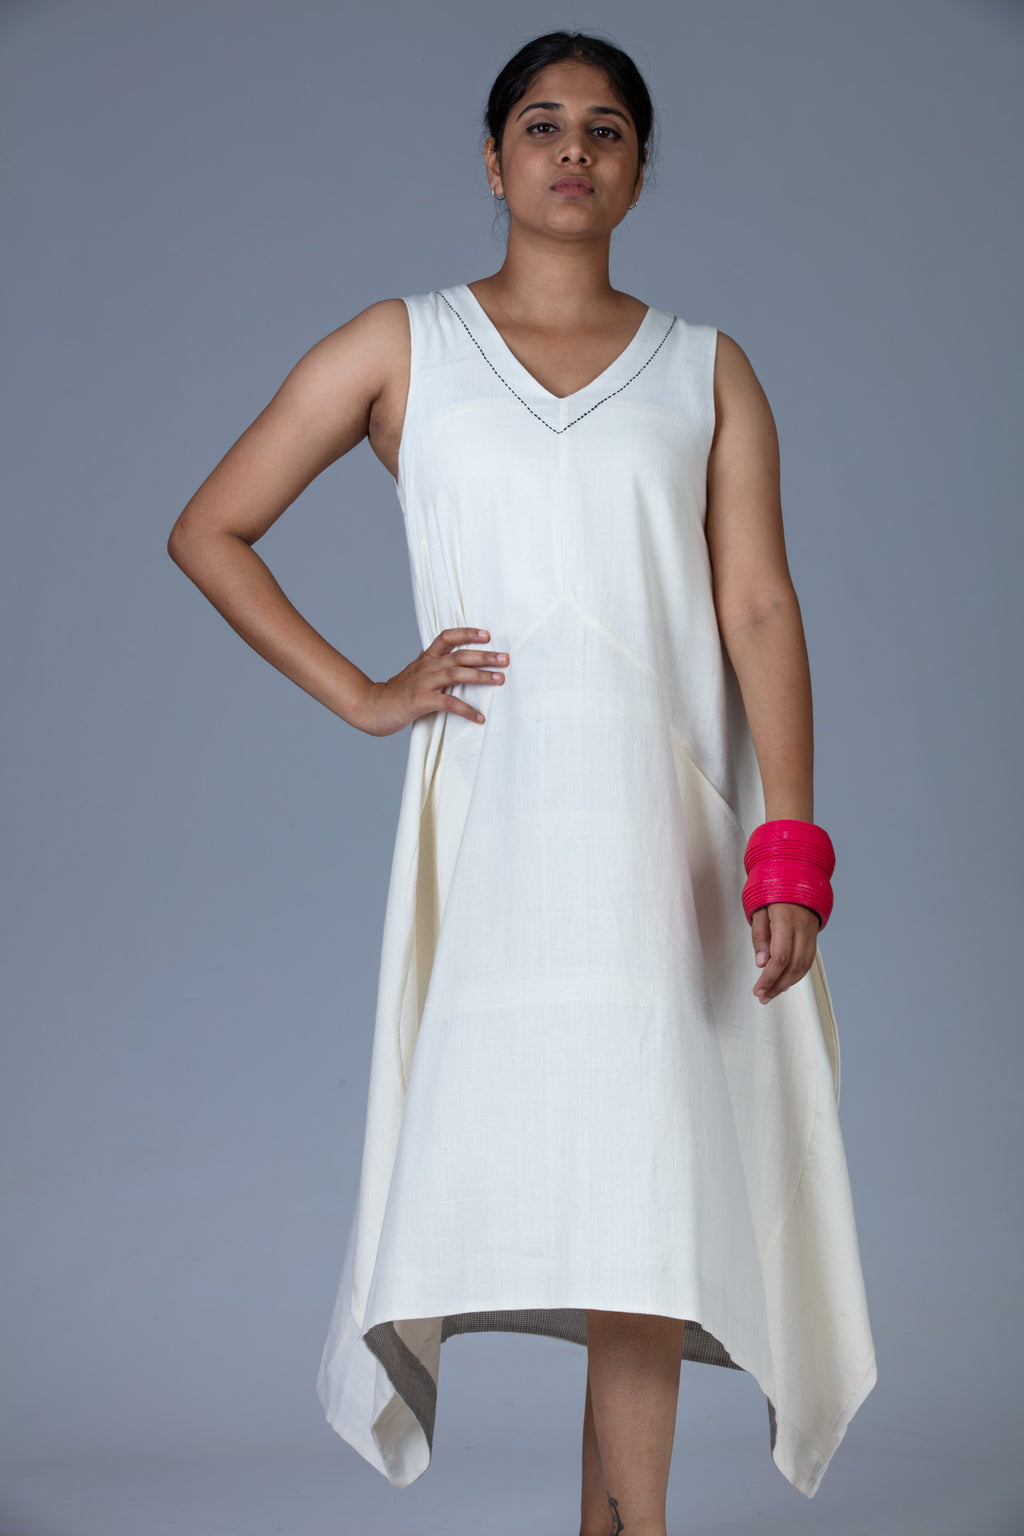 White Khadi Dress - INES - Upasana Design Studio